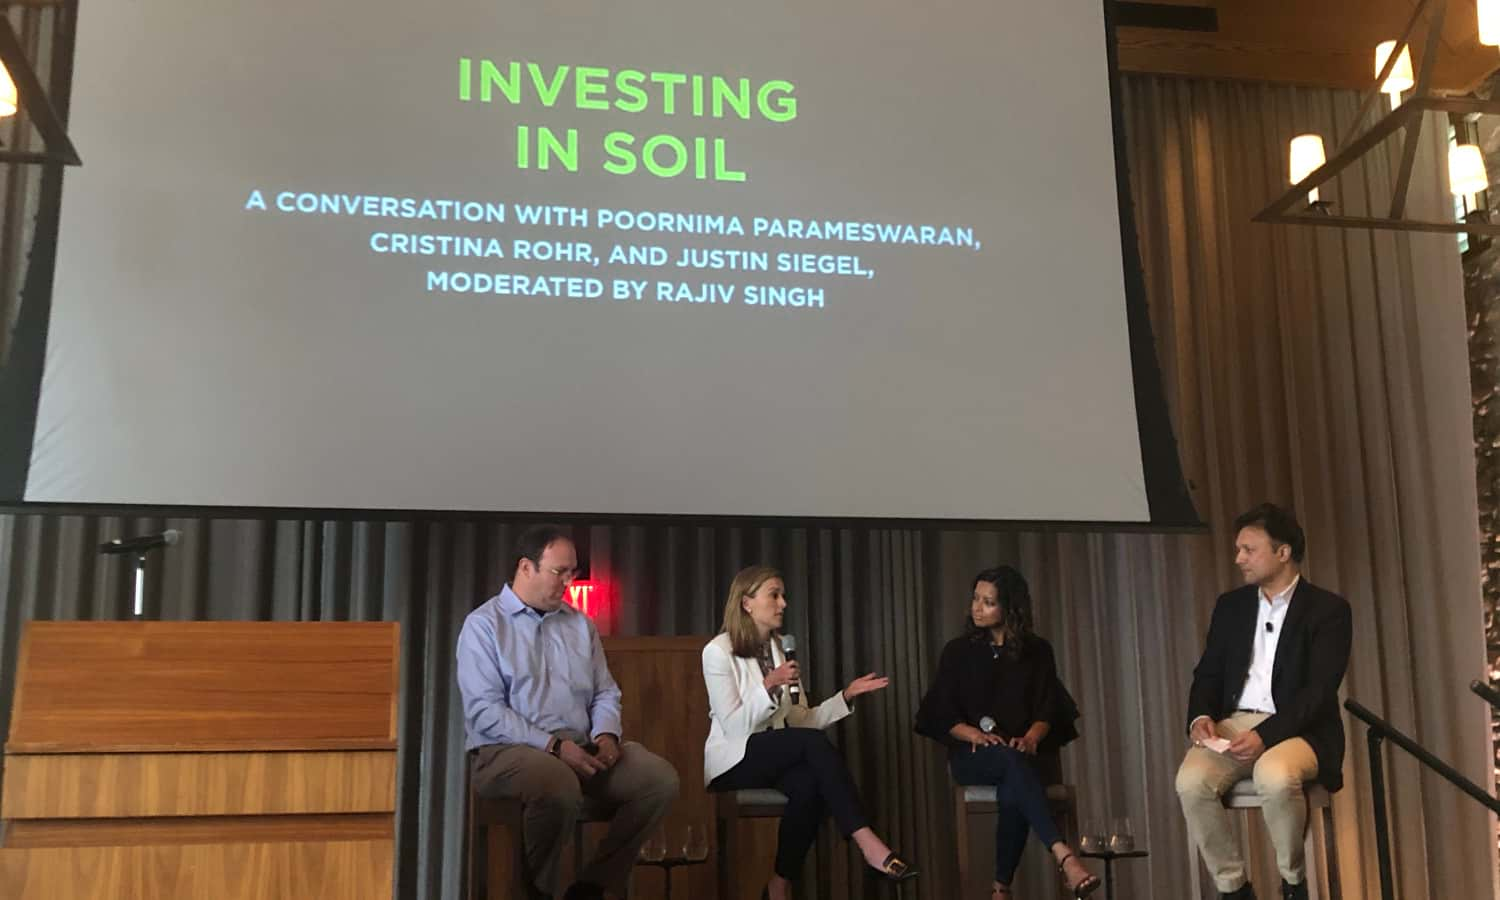 FoodShot Global has announced the four winners of their inaugural prize for food system transformations from the soil up with the MoonShot Prize.